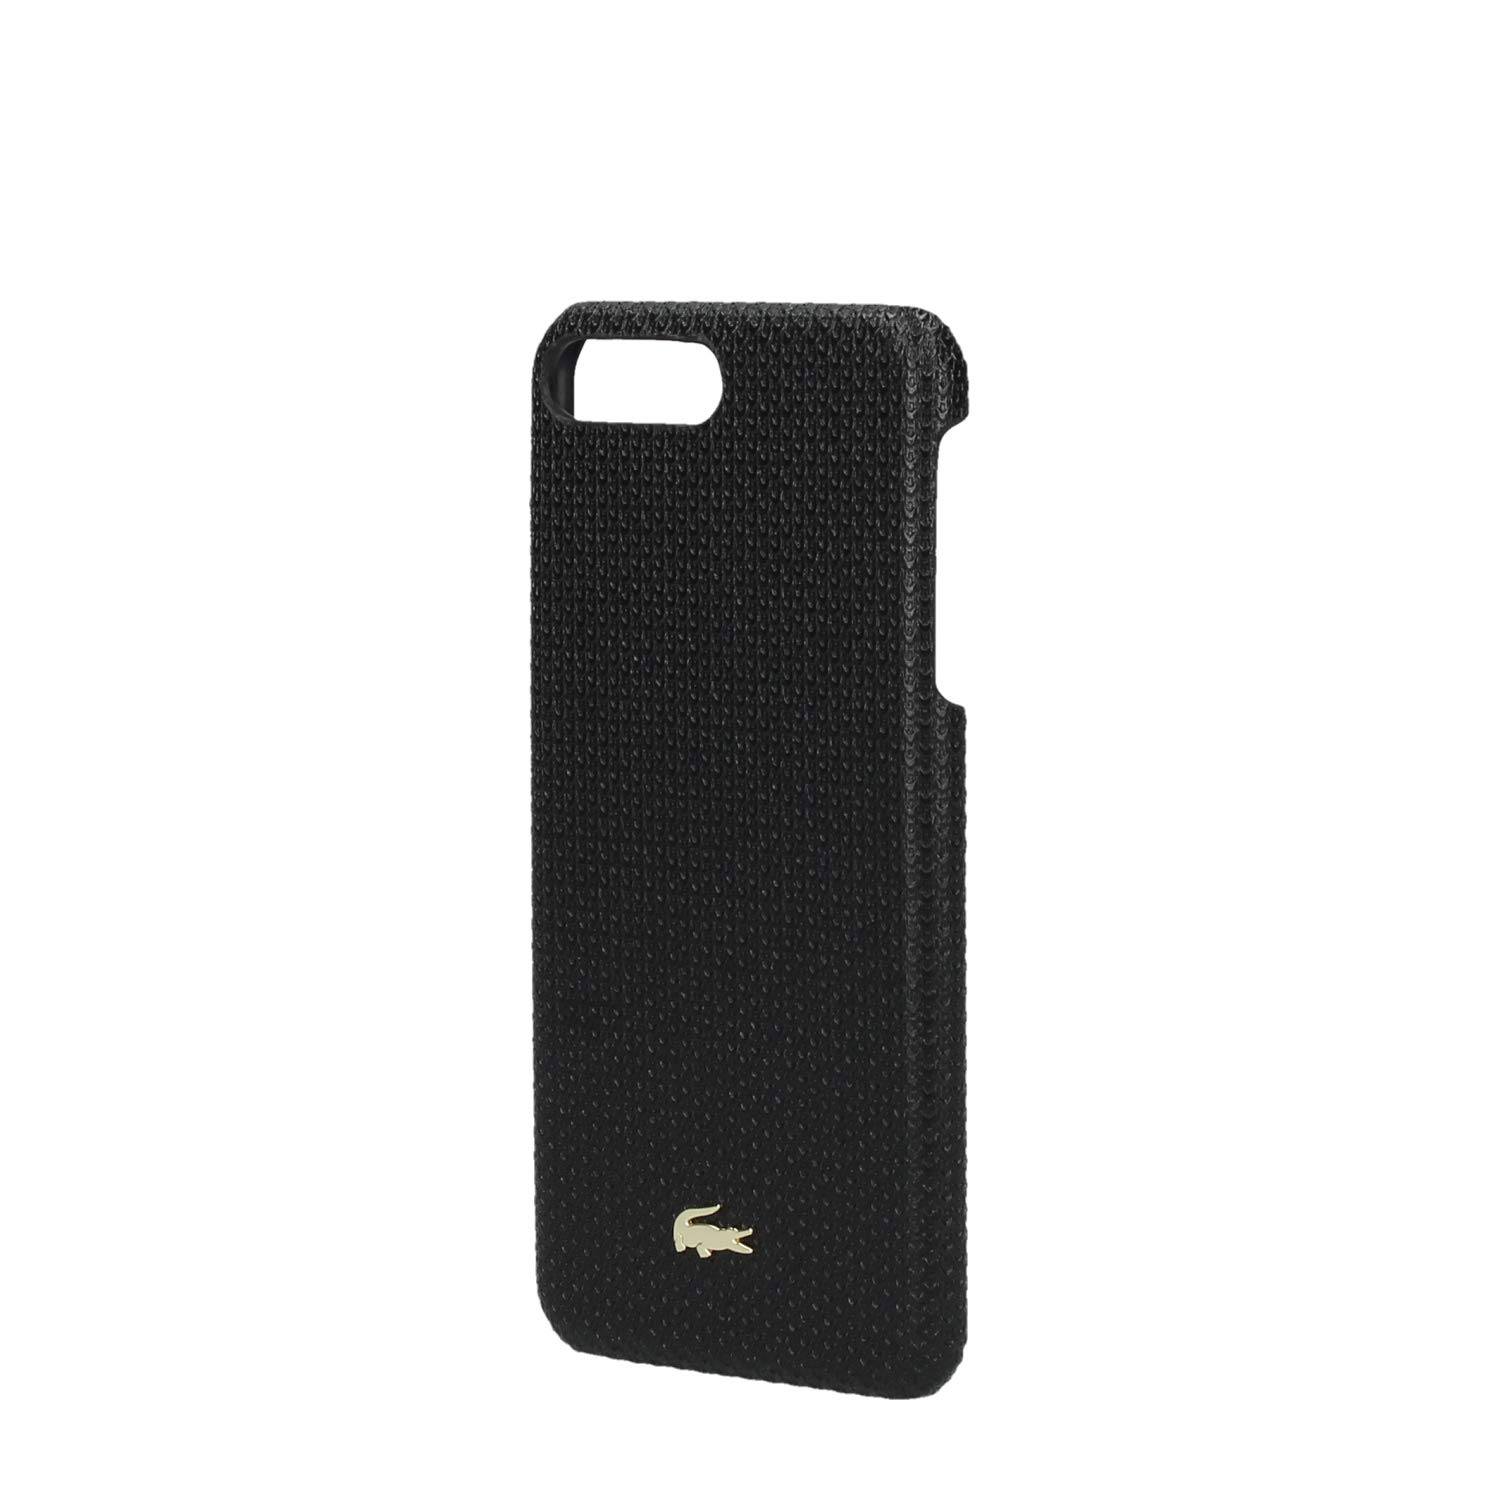 coque lacoste iphone 8 plus